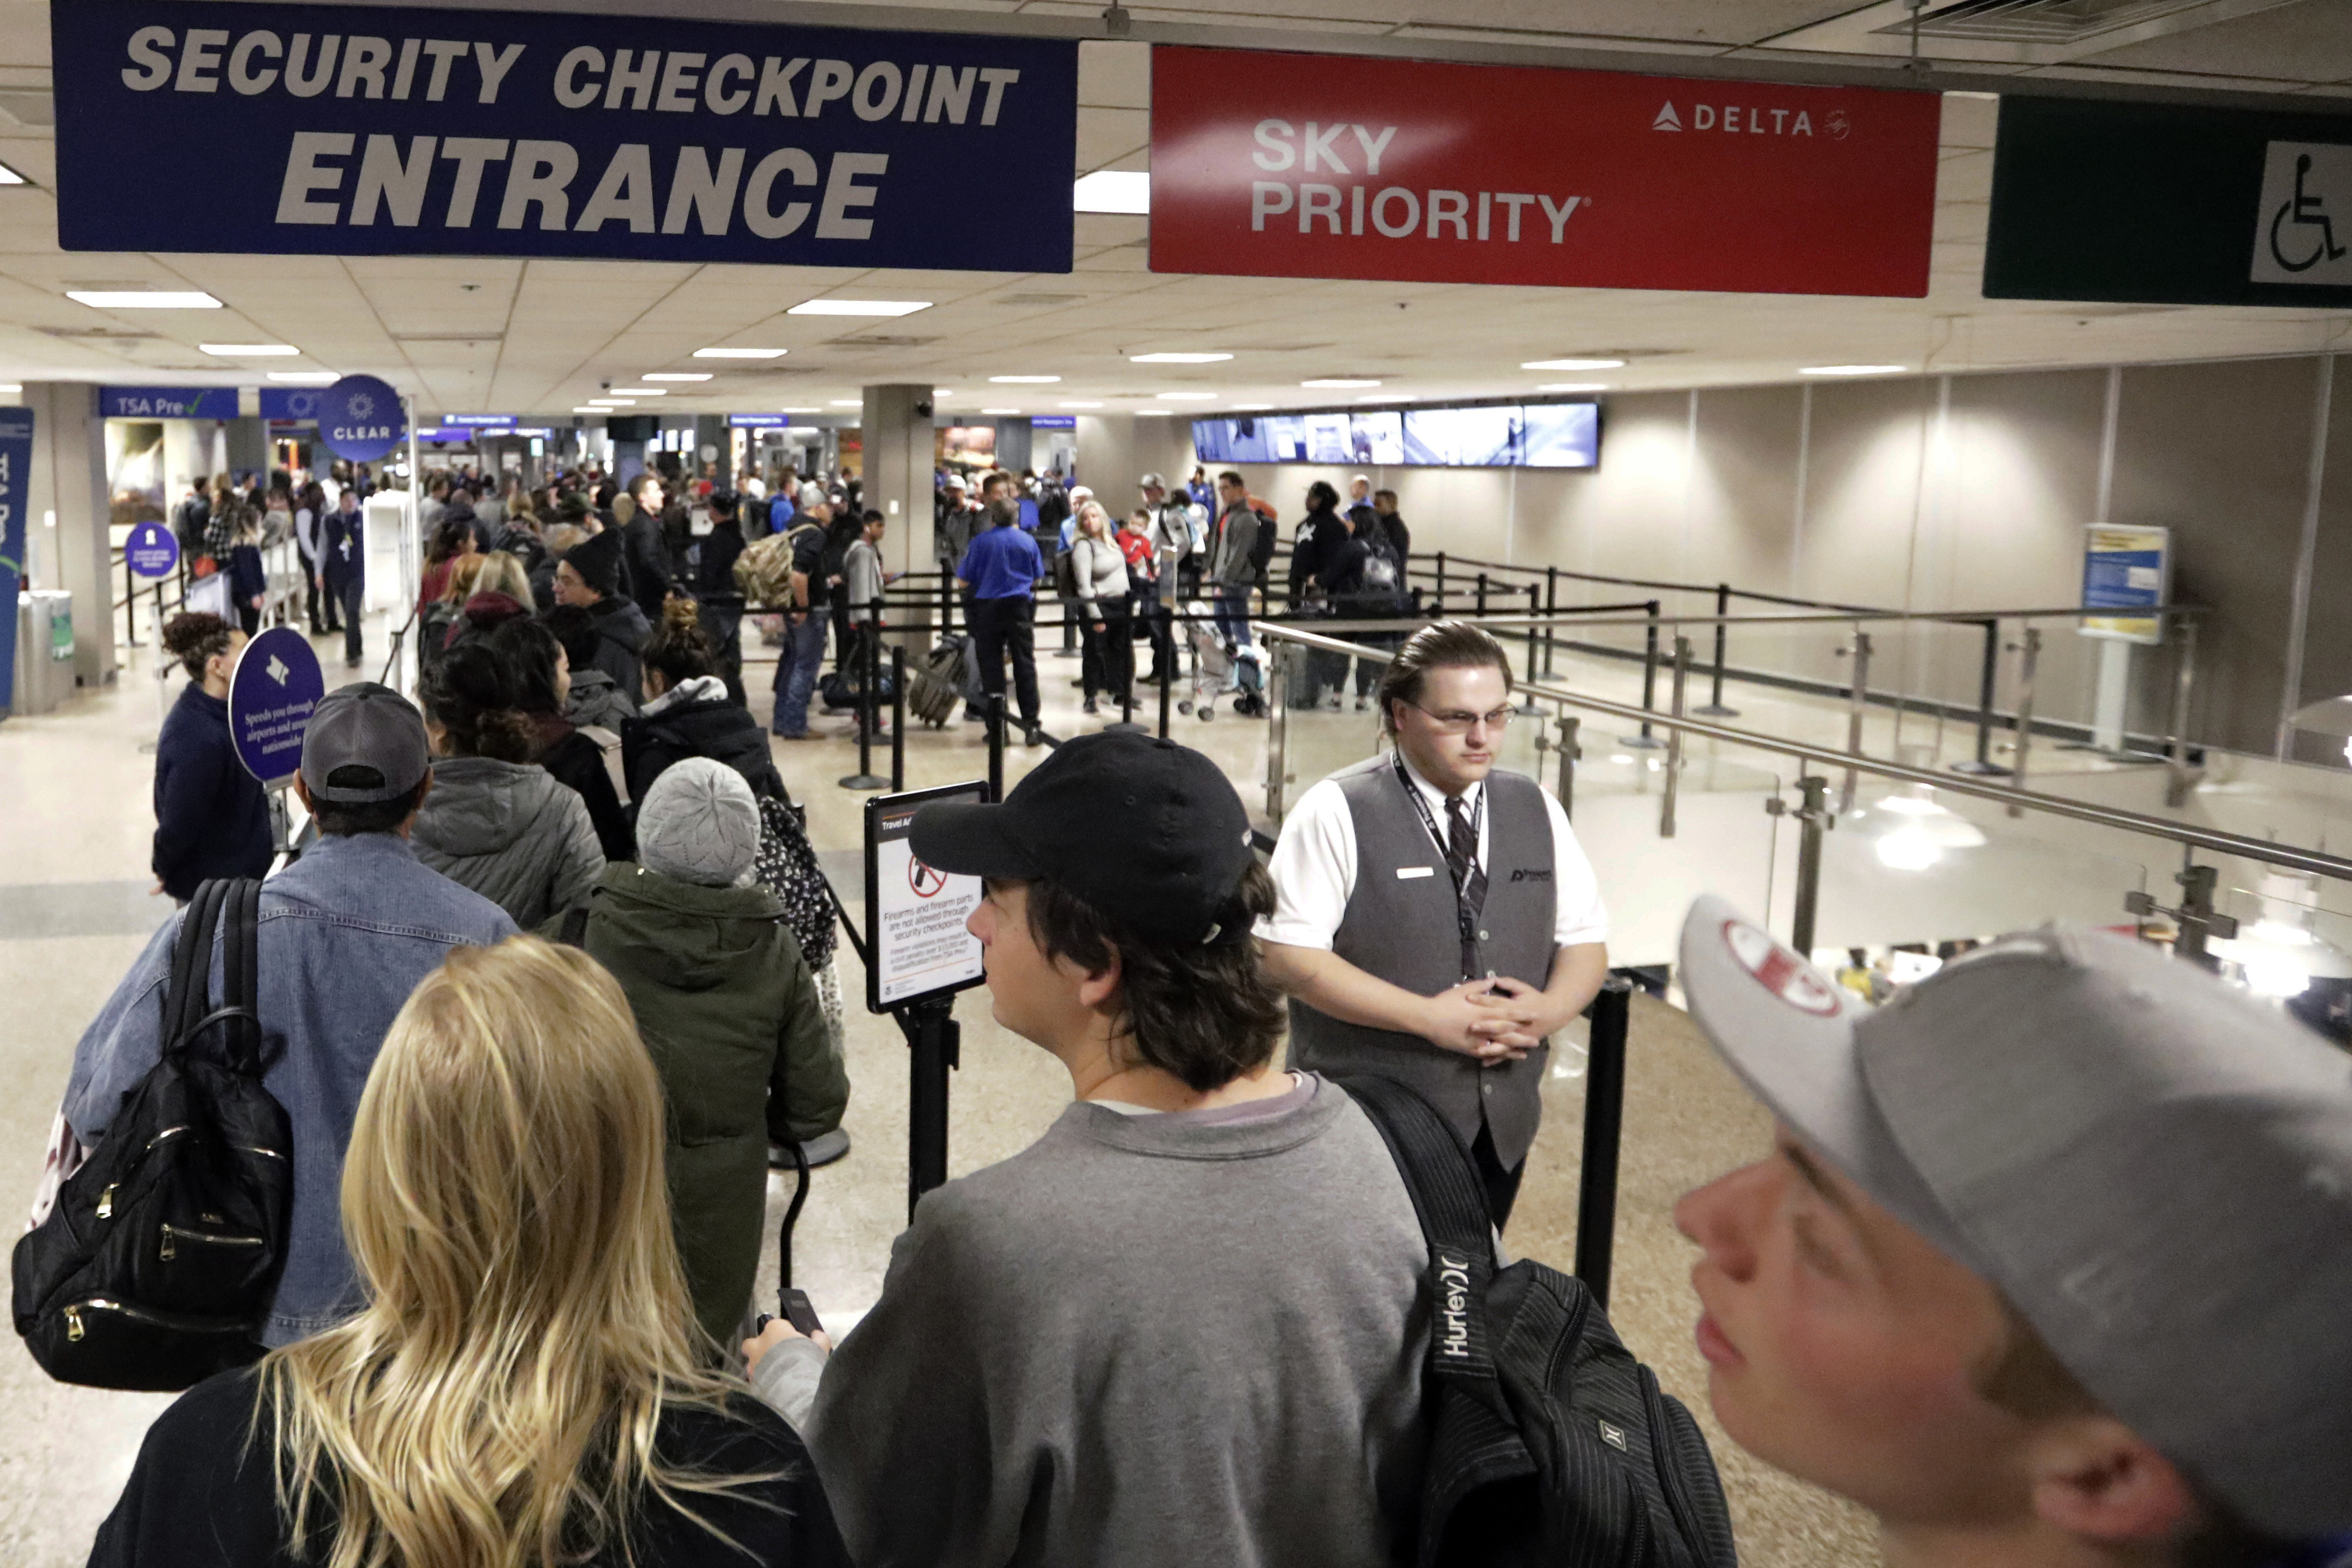 Department of Homeland Security May Require U.S. Citizens to Be Photographed at Airports